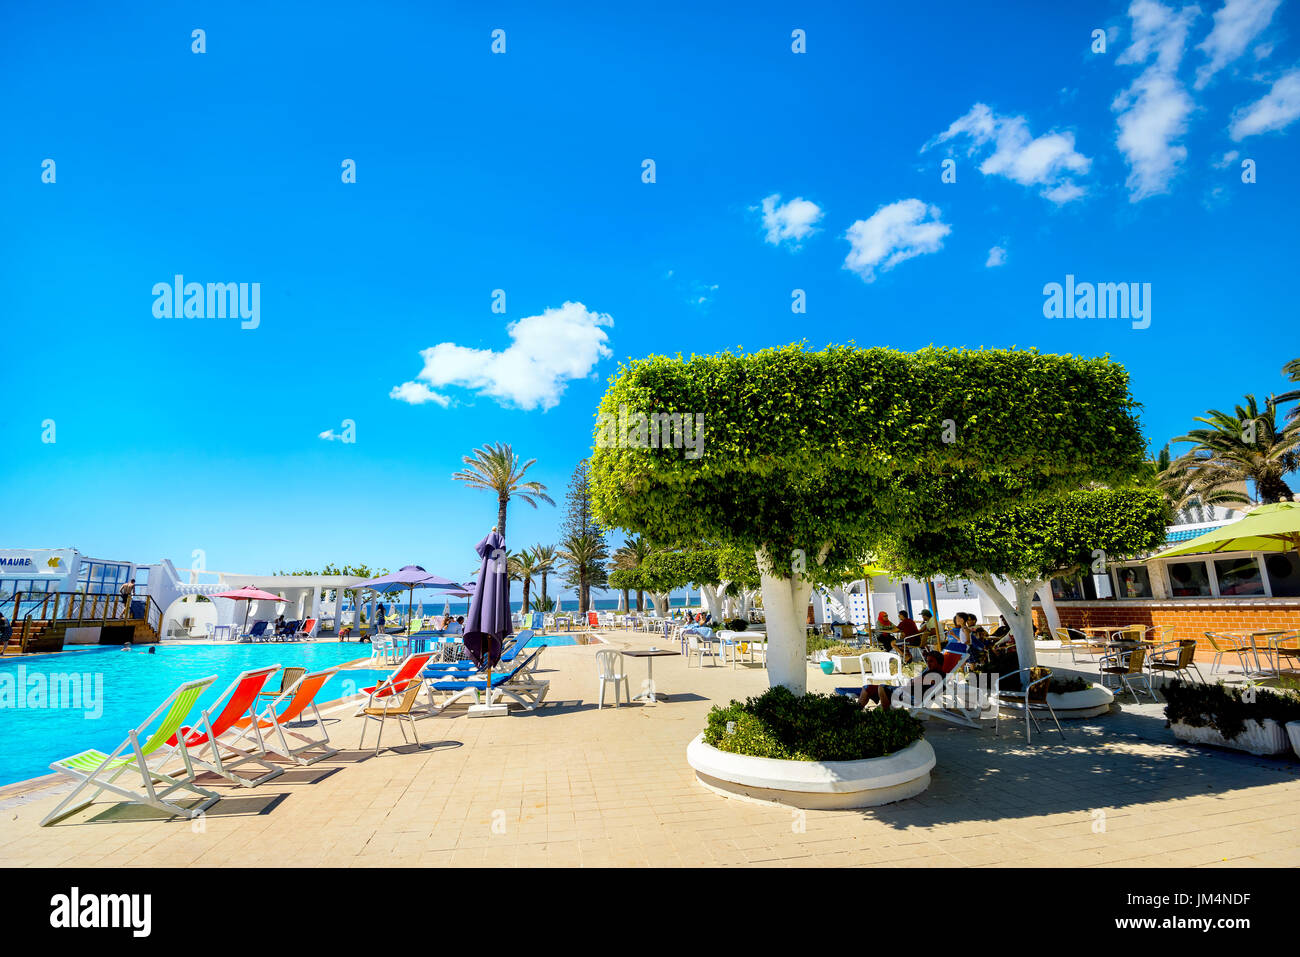 Courtyard with swimming pool of resort hotel on seaside in Nabeul. Tunisia, North Africa - Stock Image